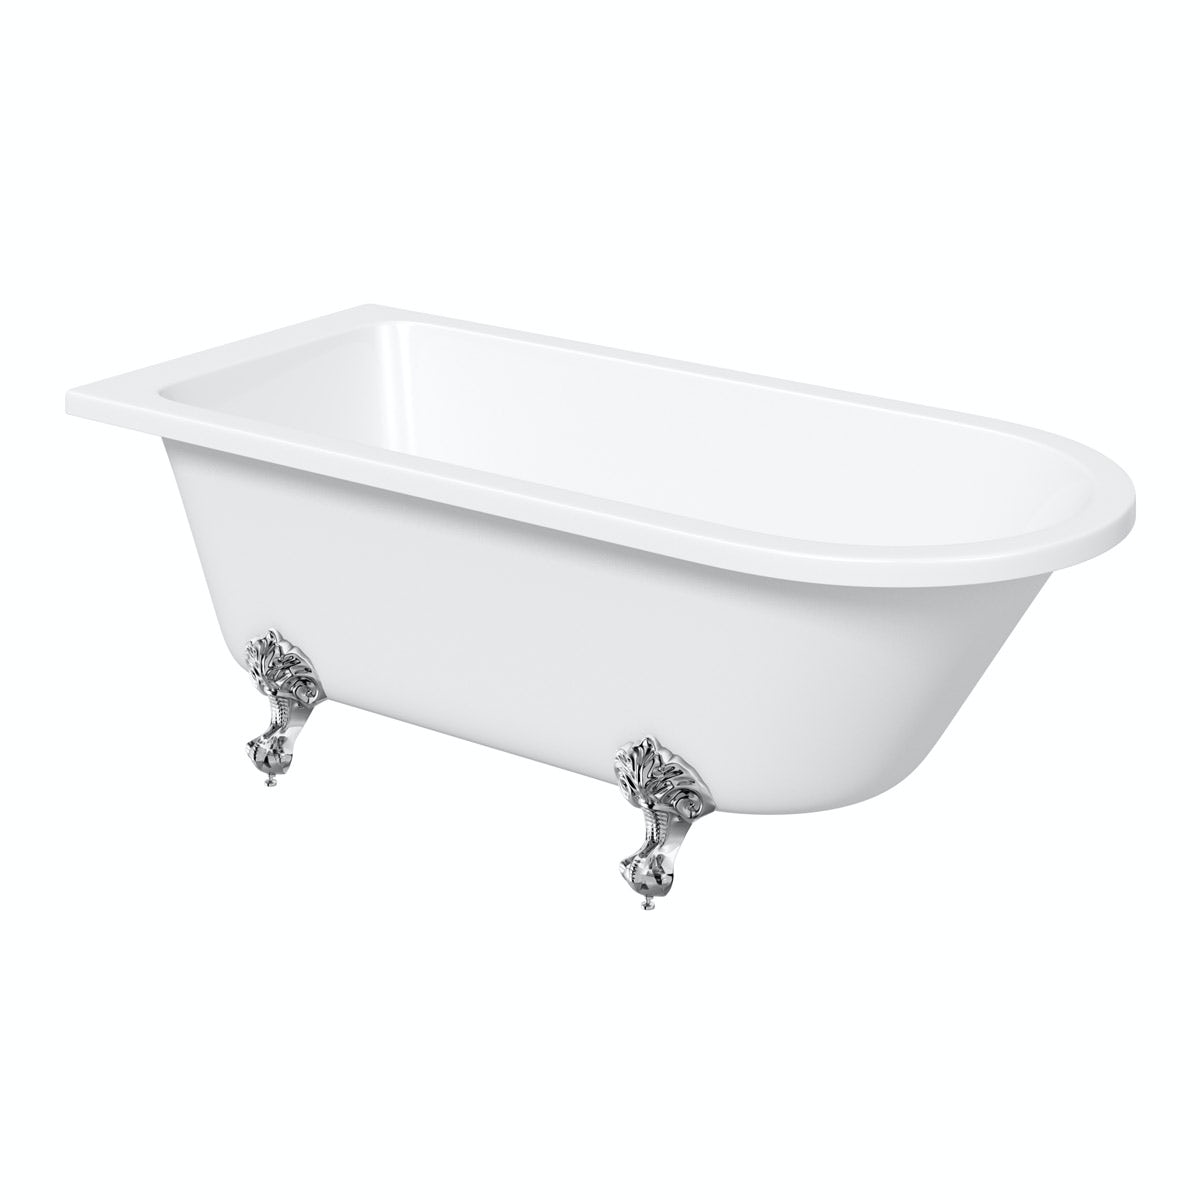 The Bath Co. Dulwich freestanding single ended bath offer pack